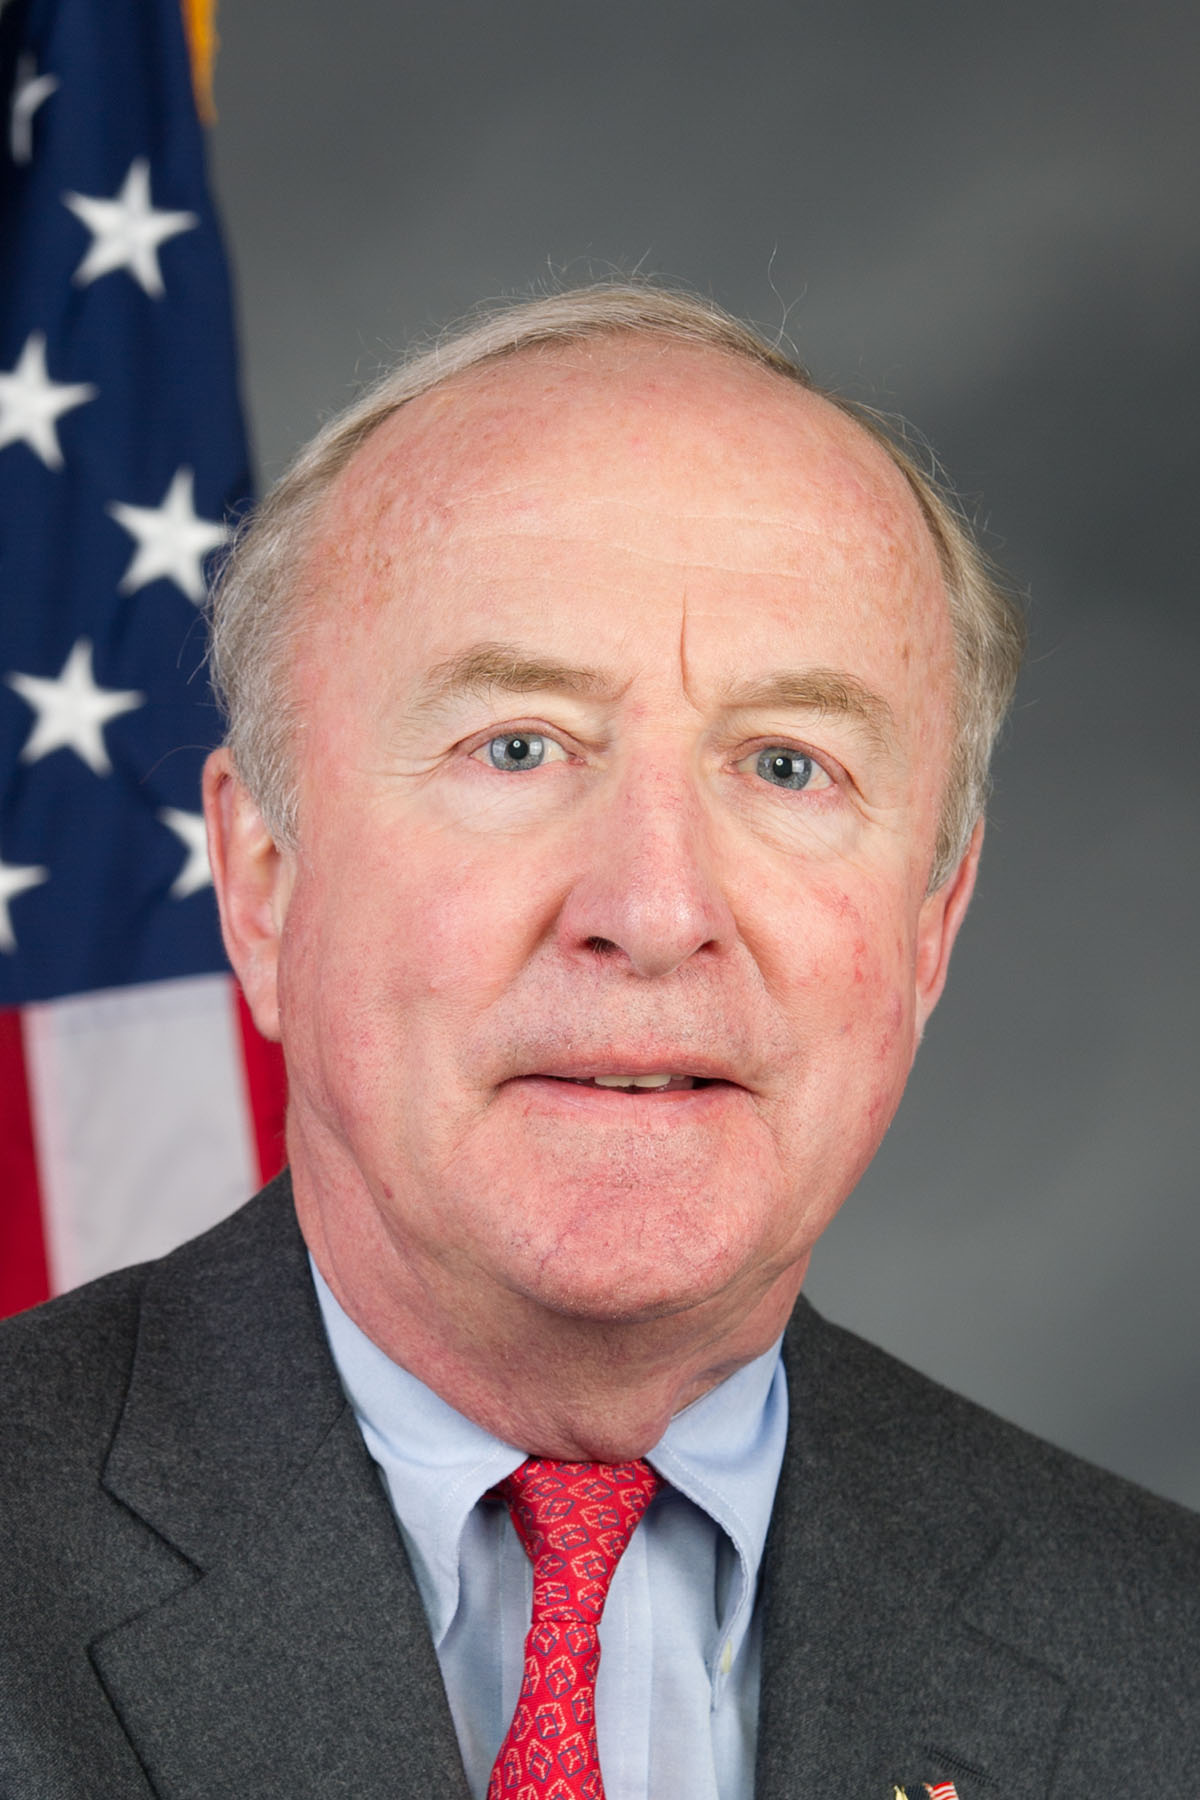 Rodney Frelinghuysen (R-11th) and Tom MacArthur (R-3rd) tried to kick 23 million Americans off health insurance, including more than 500,000 in New Jersey.